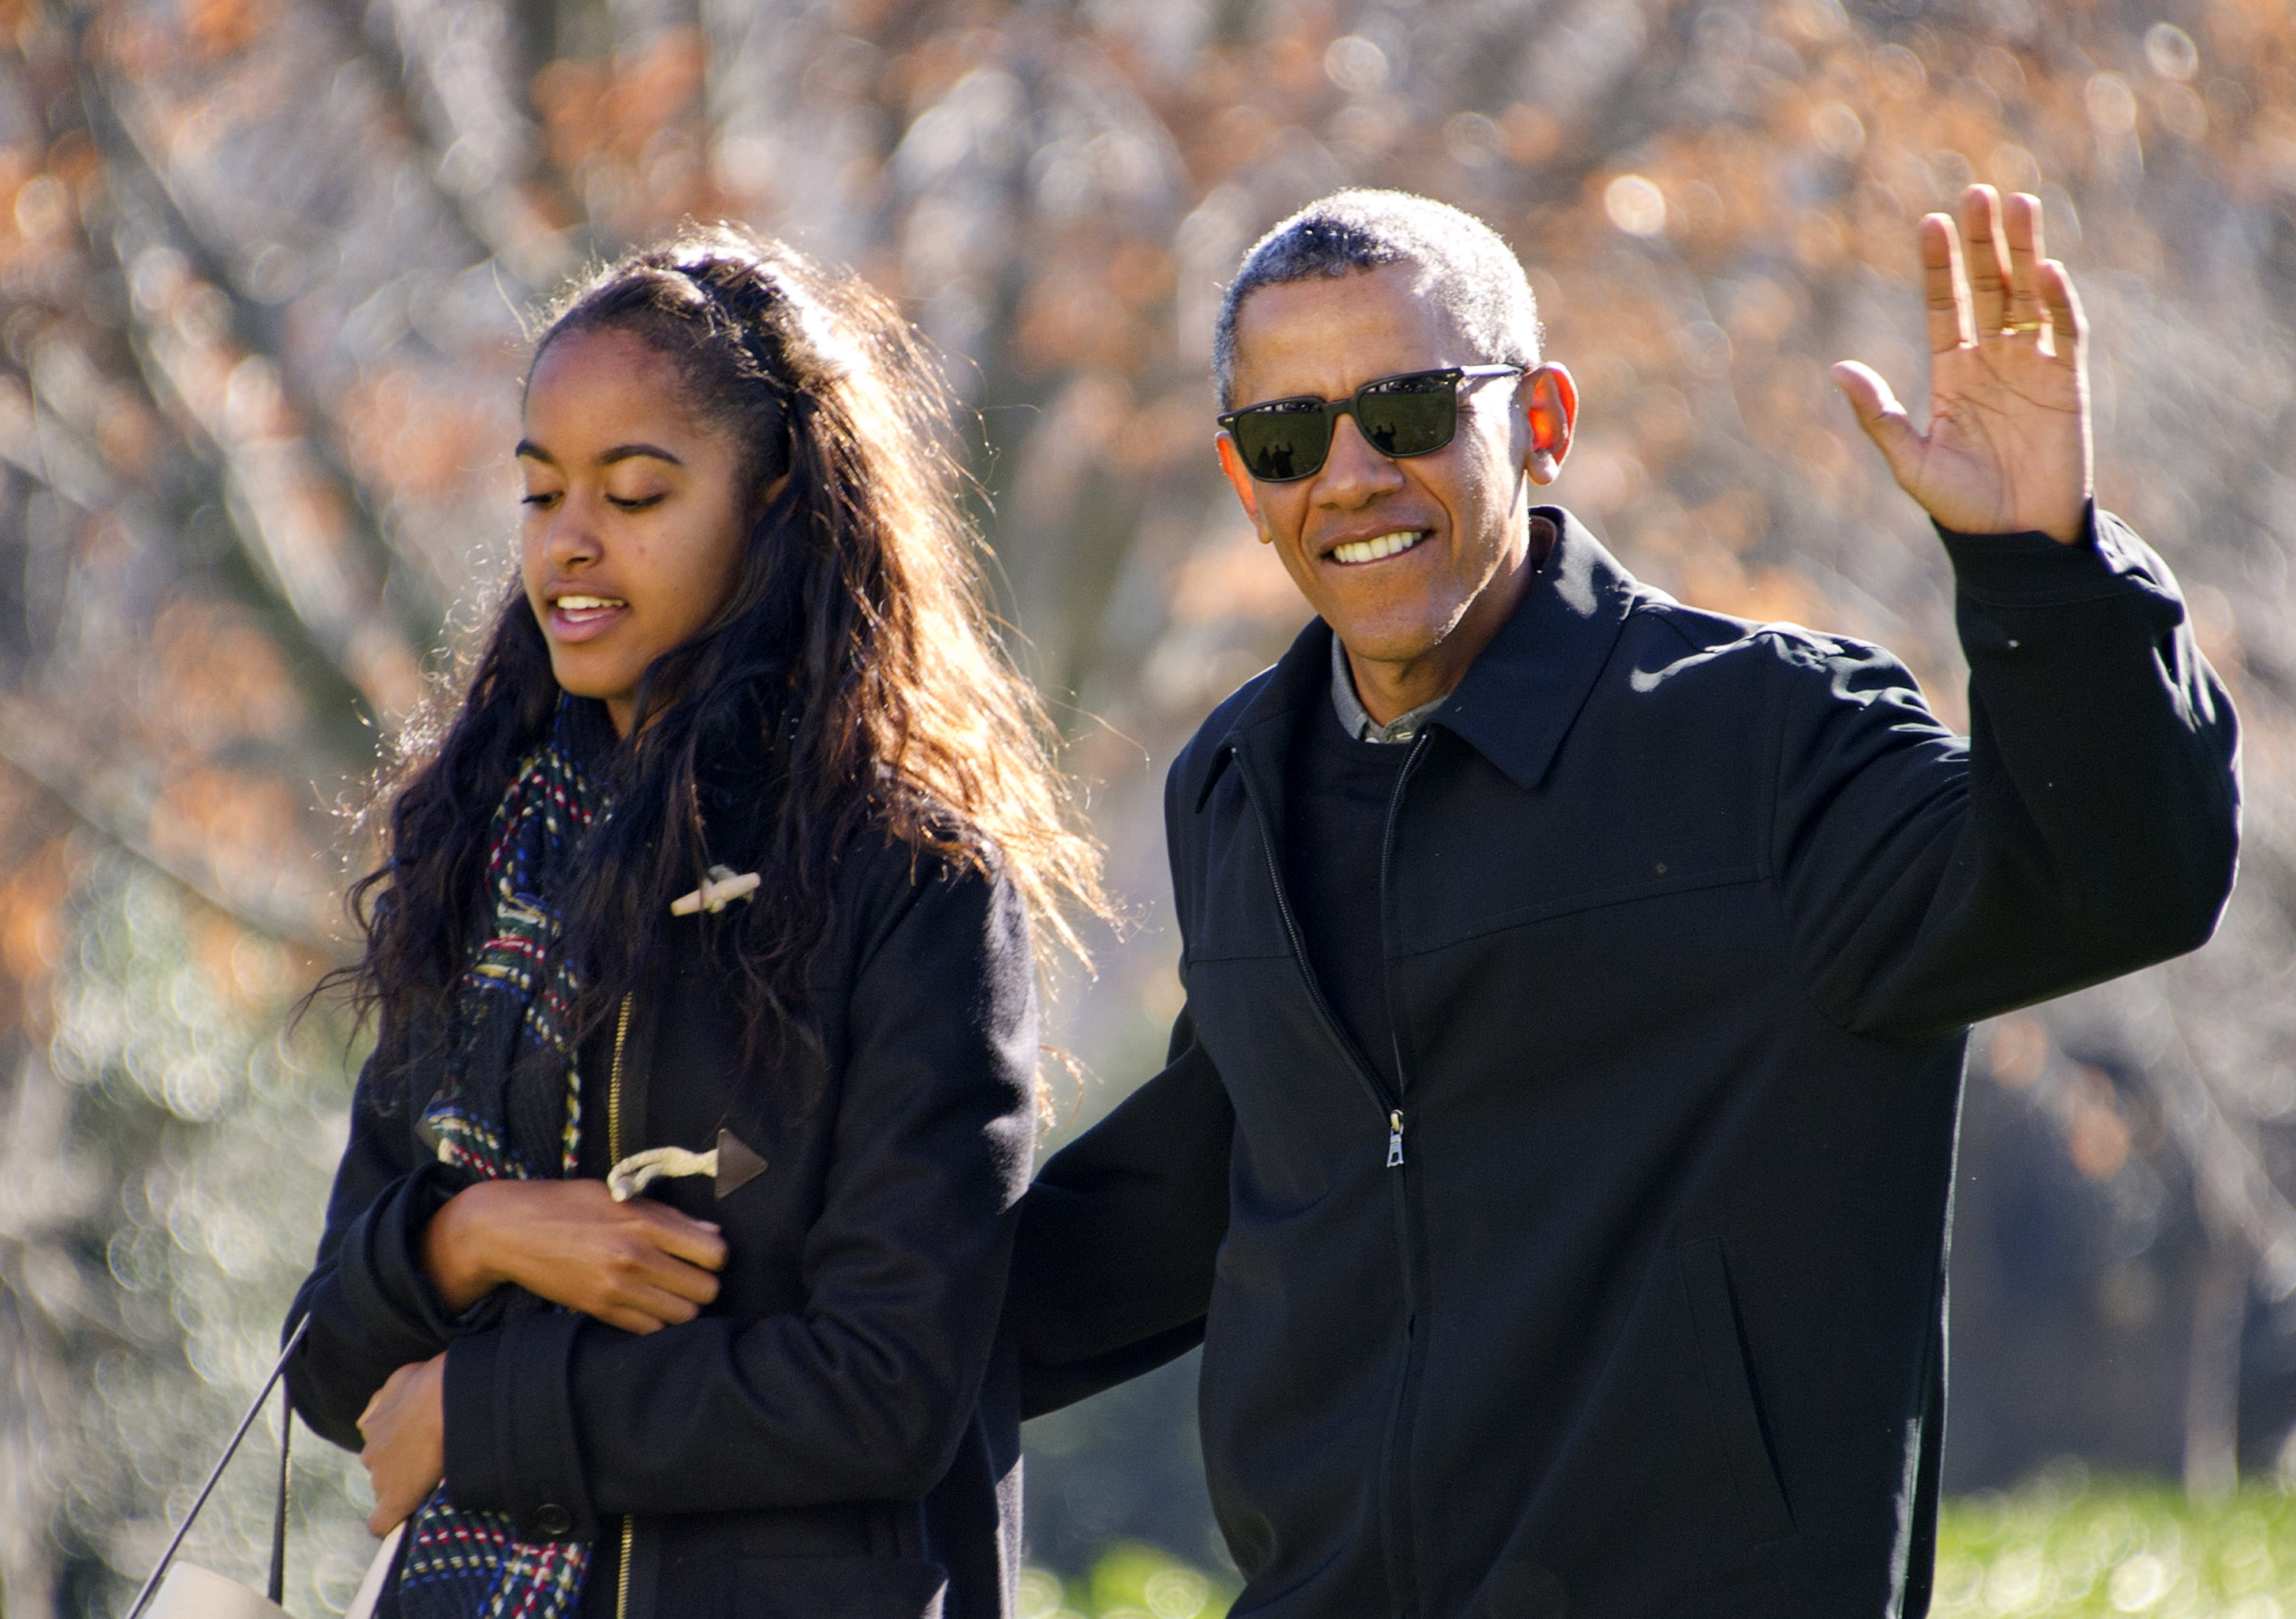 (AFP OUT) U.S. President Barack Obama waves to the assembled press as he walks with his daughter Malia on his family's return to the South Lawn of the White House January 3, 2016 in Washington, DC. The first family is returning from their two week Hawaiian vacation